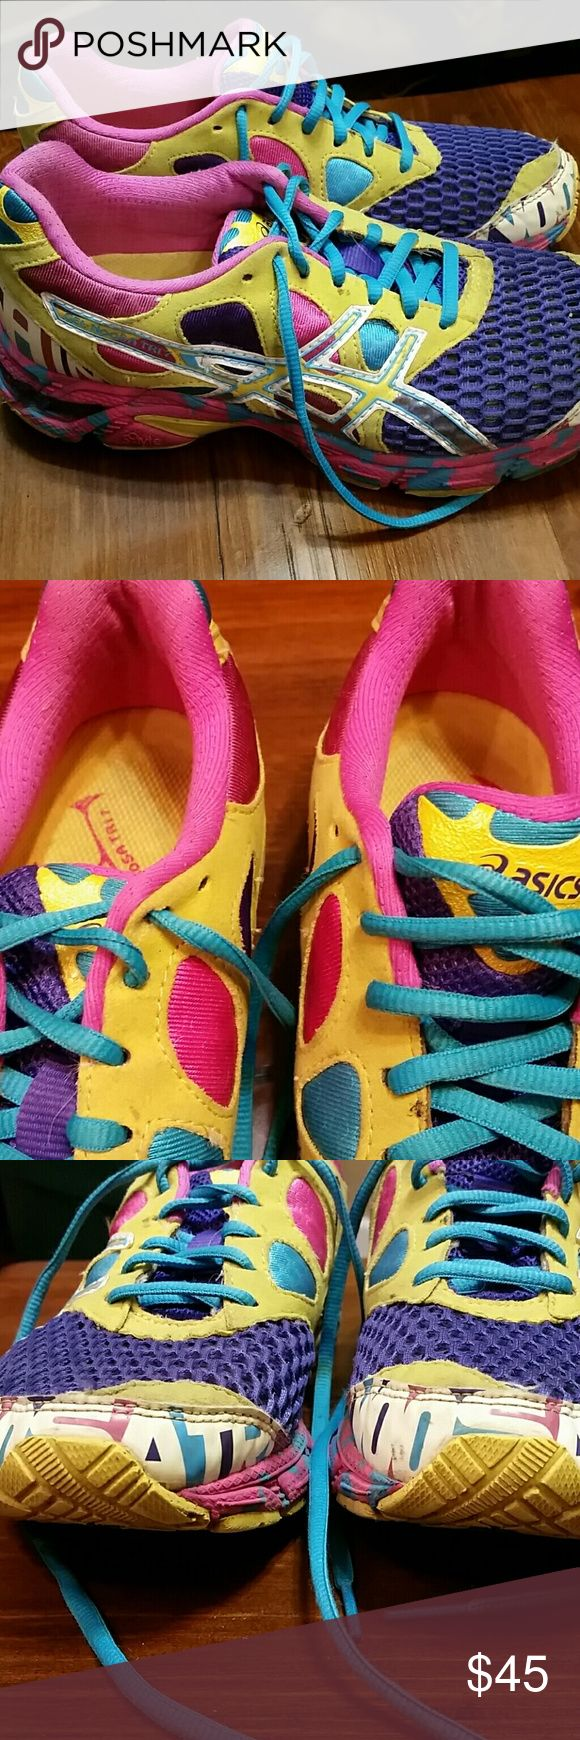 """Asics Gel Noosa Tri7 Asics Gel Noosa Tri7 sneakers, still in good condition. Purple/ yellow/ pink/ blue. """"NOOSA TRI"""" on toe and heels of sneakers glows for safer running in the dark. Great sneakers, just need to downsize my collection! Asics Shoes Sneakers"""